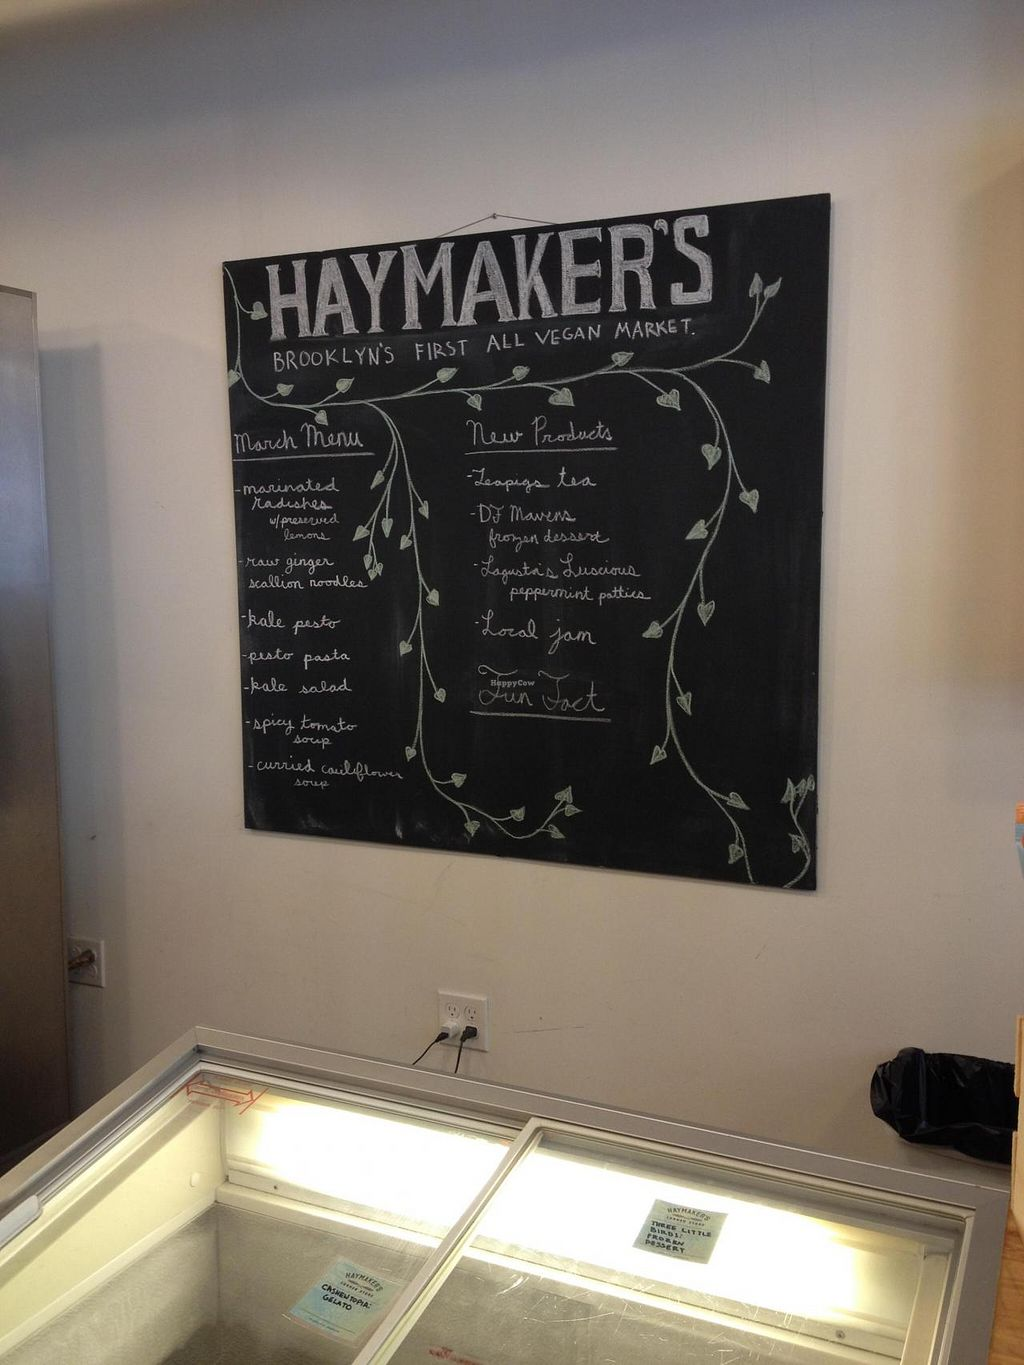 """Photo of CLOSED: Haymaker's Corner Store  by <a href=""""/members/profile/vegan_ryan"""">vegan_ryan</a> <br/>Inside of store / what's new <br/> March 16, 2015  - <a href='/contact/abuse/image/56048/95871'>Report</a>"""